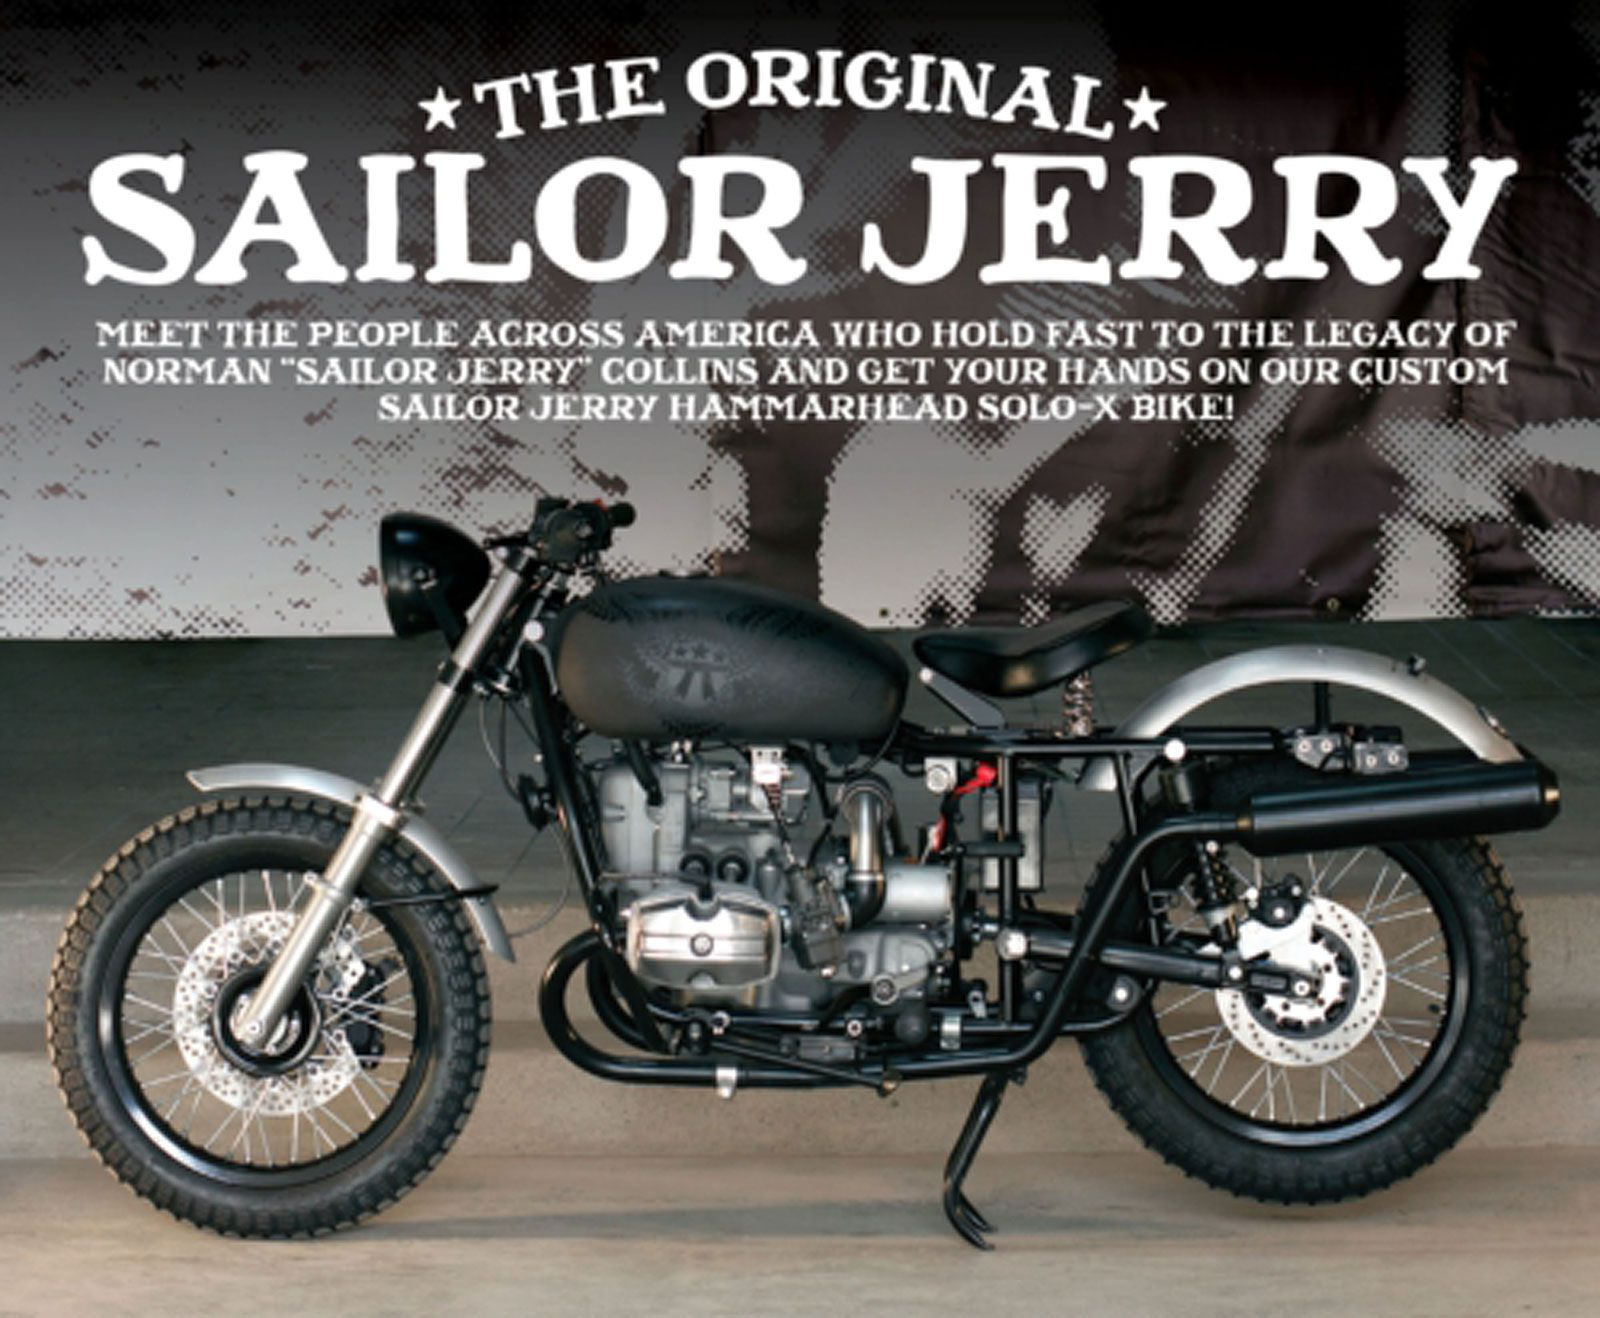 Sailor Jerry Announces Hammarhead Solo X Bike Competition Motorcycle Cruiser